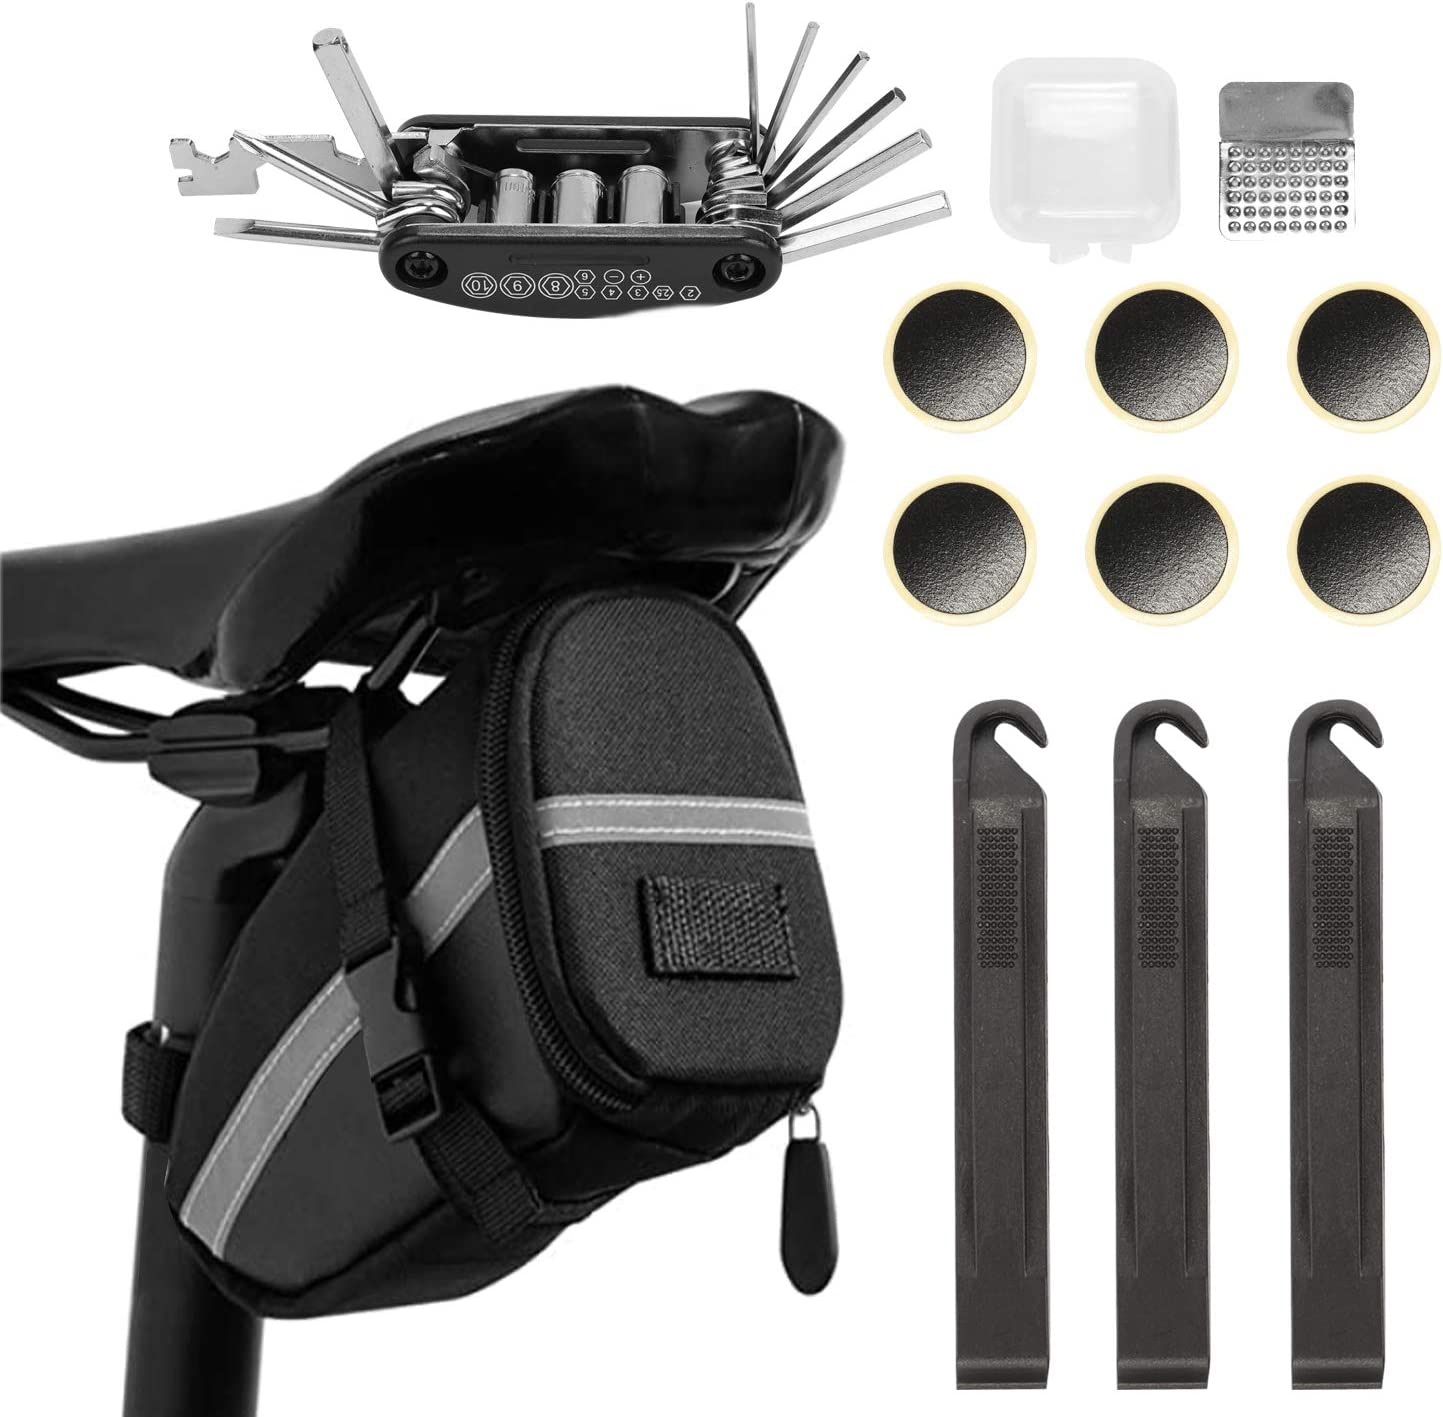 ROSWHEEL Cycling Bicycle Seat Bike Tail Rear Pouch Saddle Bag Outdoor 1.2L